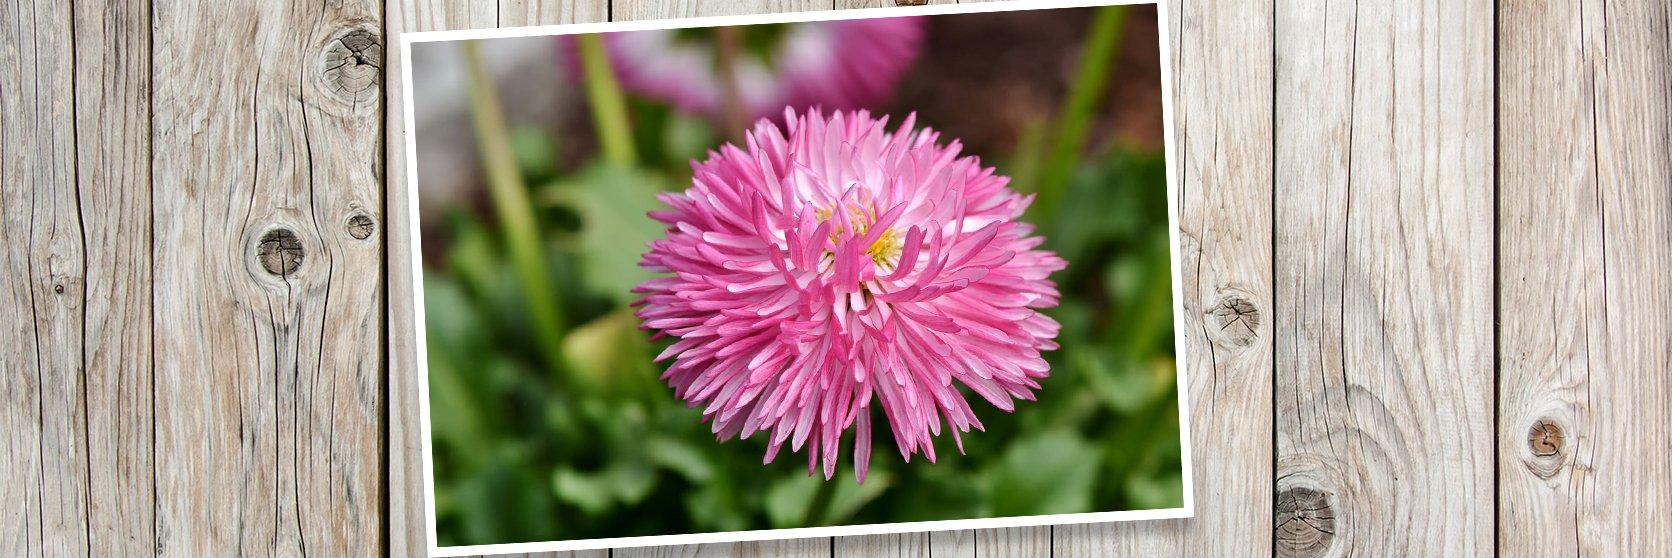 China-Aster-Flower-Blossom-PLANK